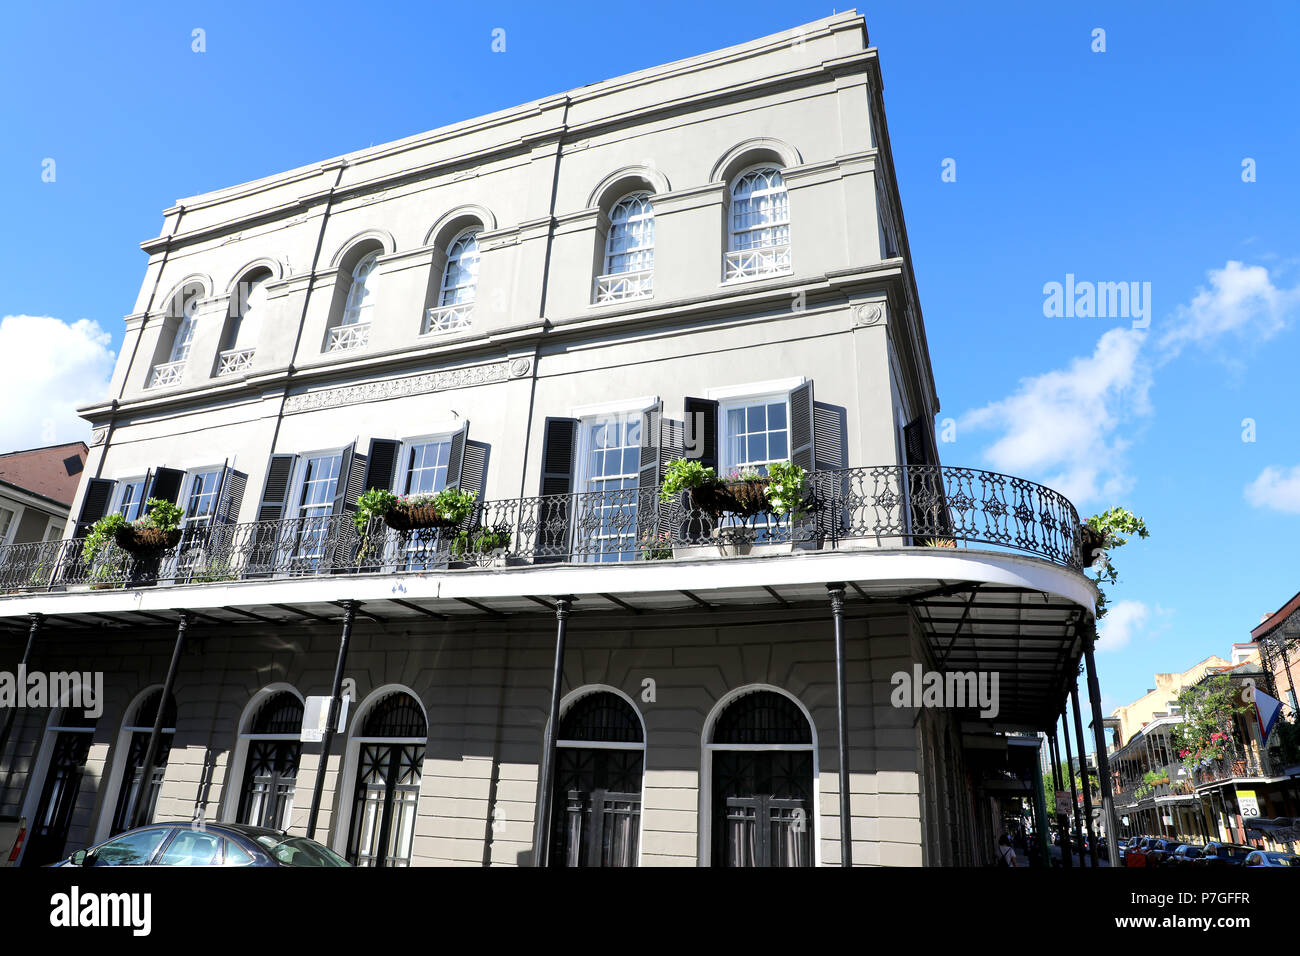 Horror House Delphine LaLaurie Mansion French Quarter New Orleans Louisiana, USA - Stock Image